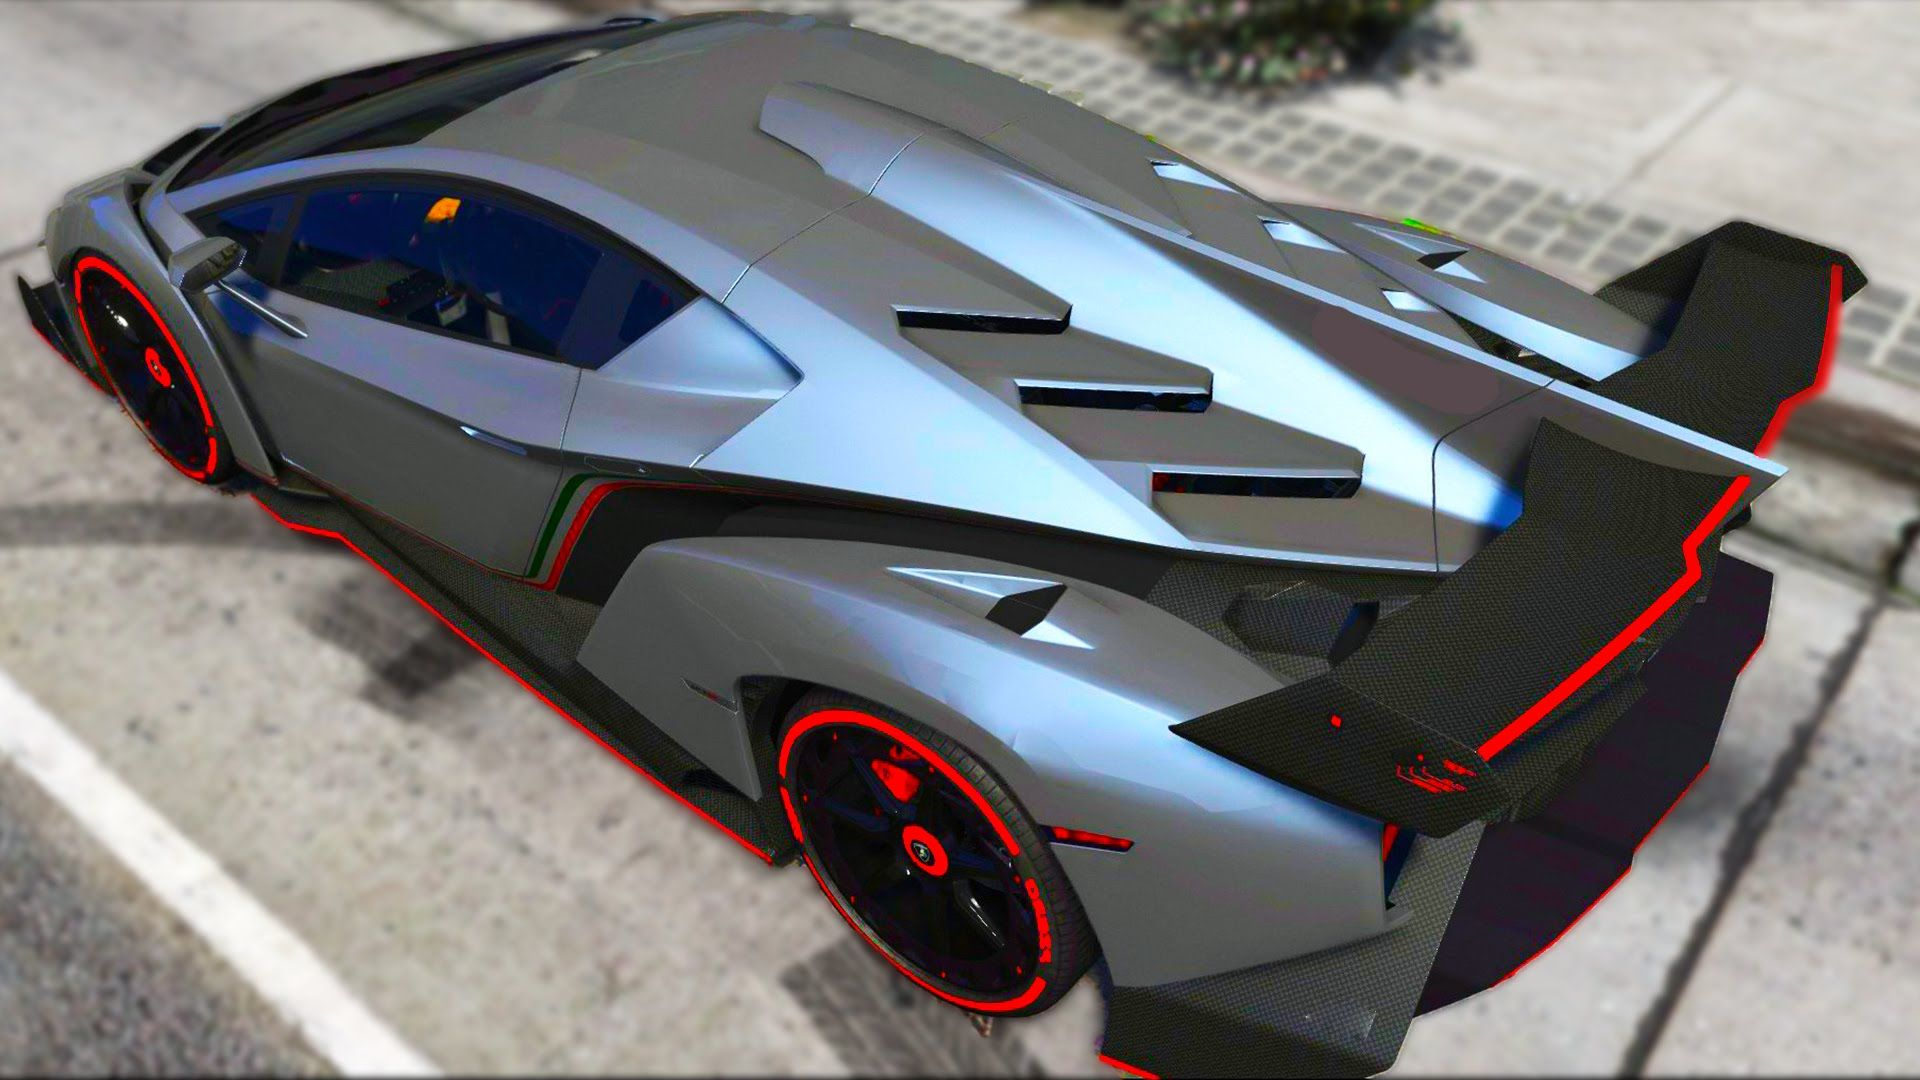 Gta 5 Dlc Update Released New Cars Customizations Amp More